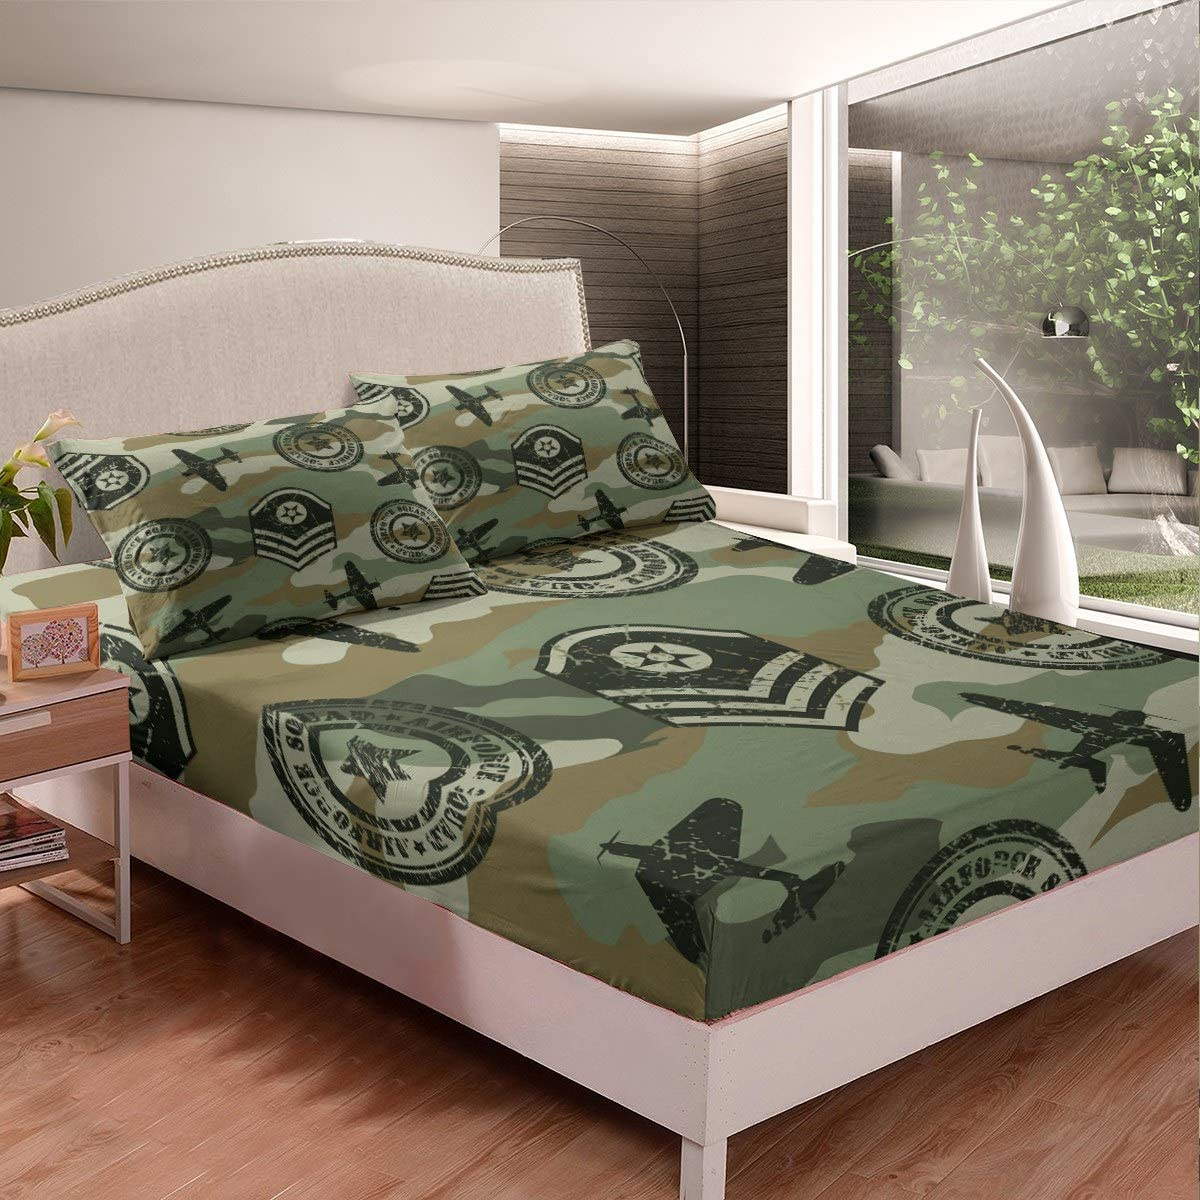 Feelyou Camouflage Bedding Set Boys Teens 3D Aircraft Printed Bed Sheet Set Kids Military Hidden Fitted Sheet Fighter Airplane Bed Cover,Room Decor 2Pcs Sheets Twin Size